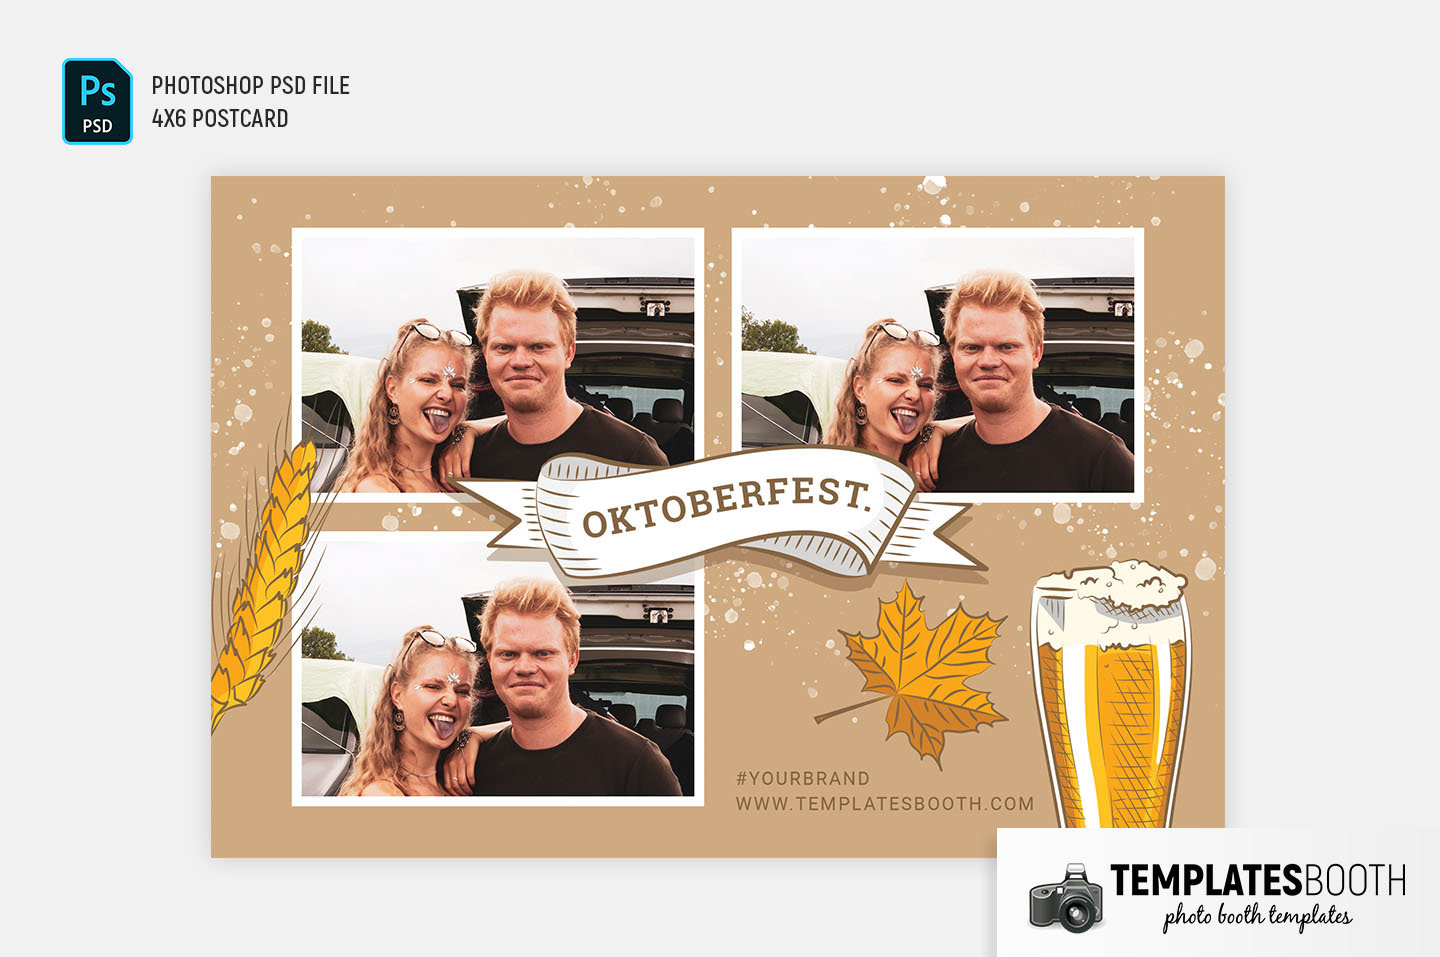 Oktoberfest Photo Booth Template (4x6 Postcard)